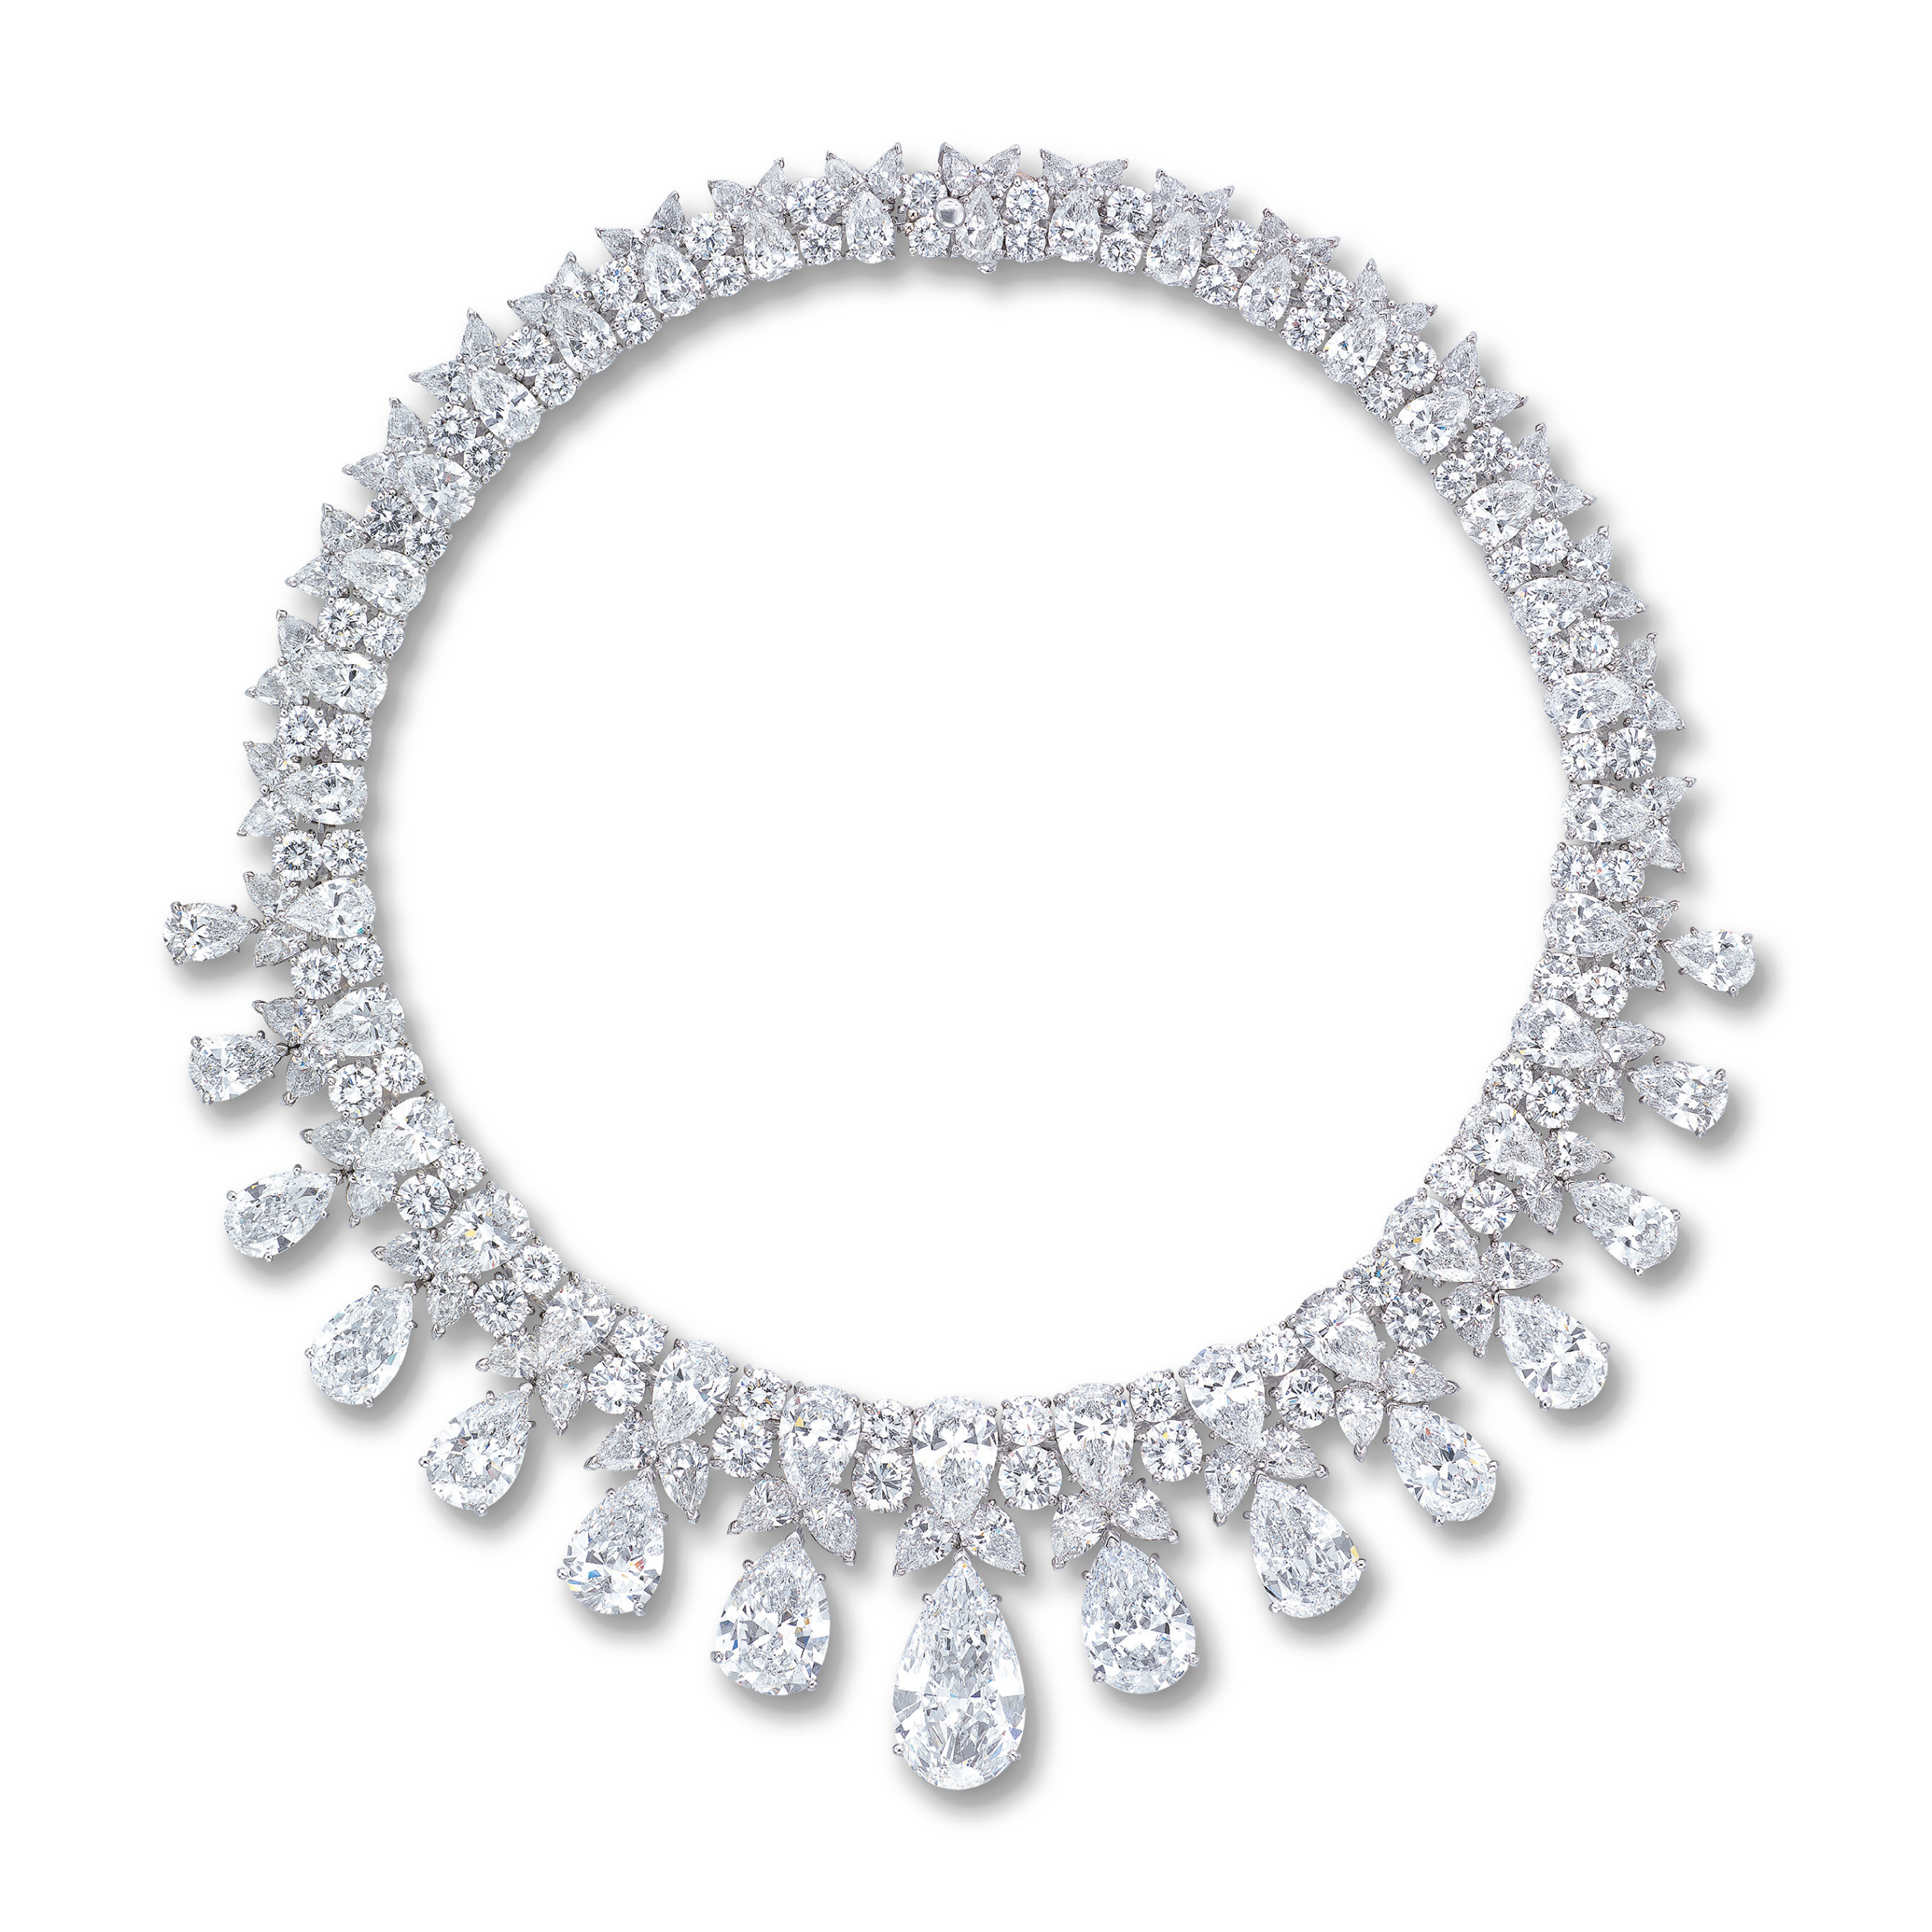 A MAGNIFICENT DIAMOND NECKLACE, BY HARRY WINSTON